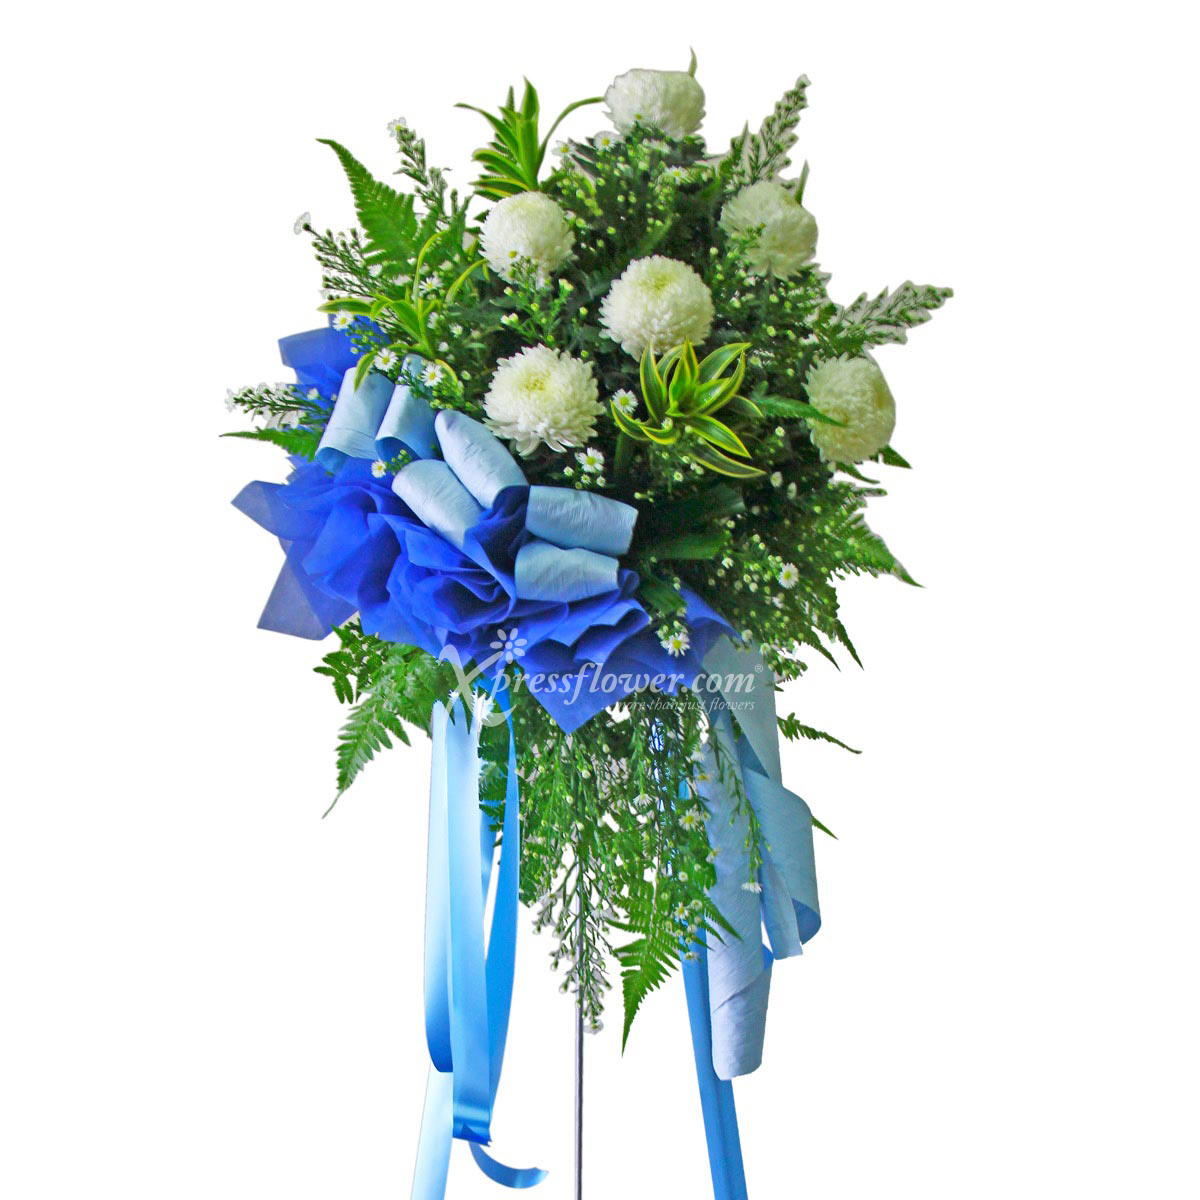 Blue Solace (Wreath)